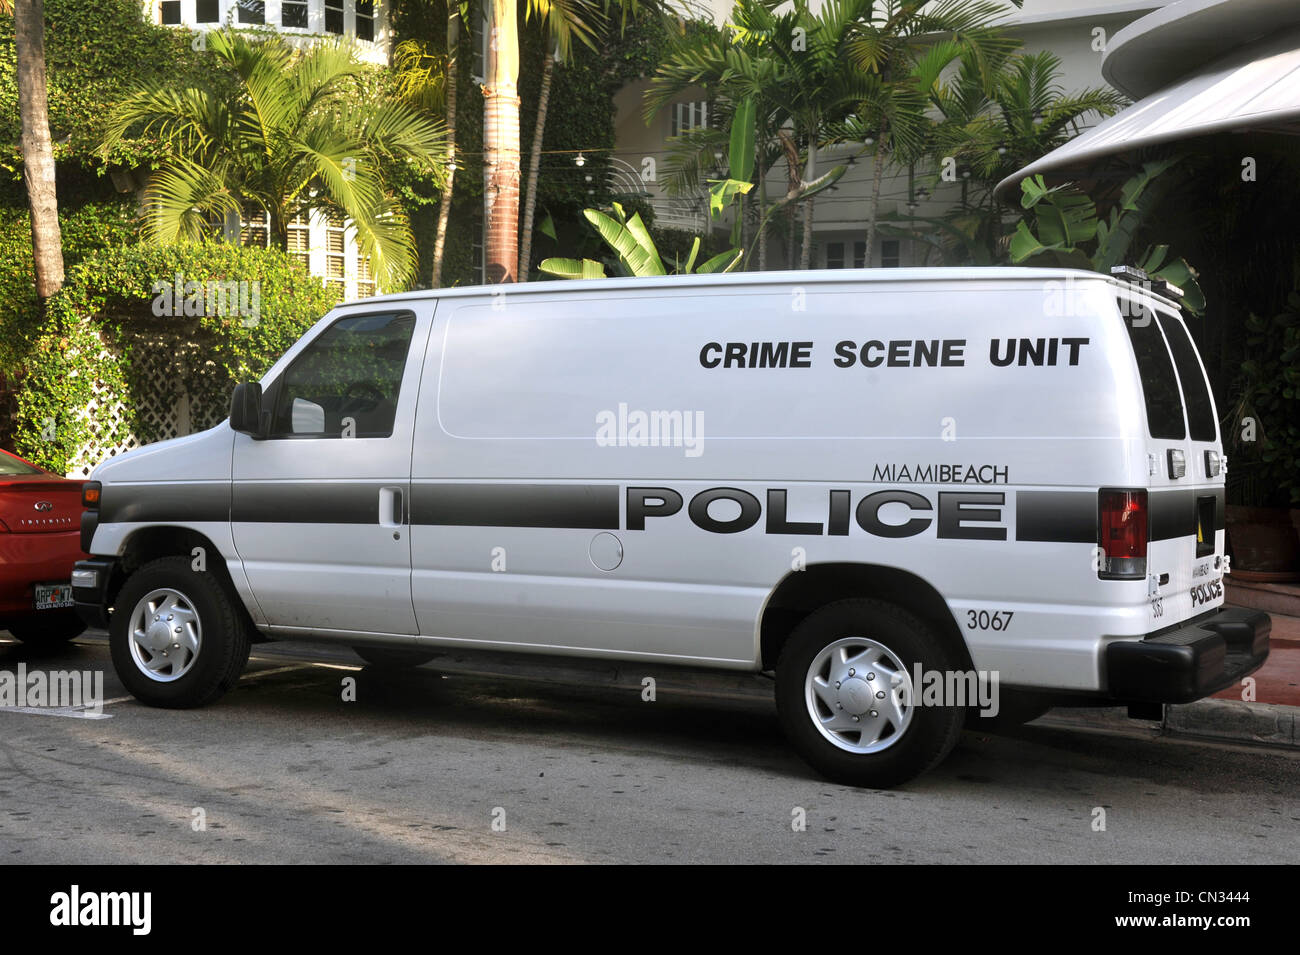 Crime scene unit police van, Miami, Florida, USA - Stock Image